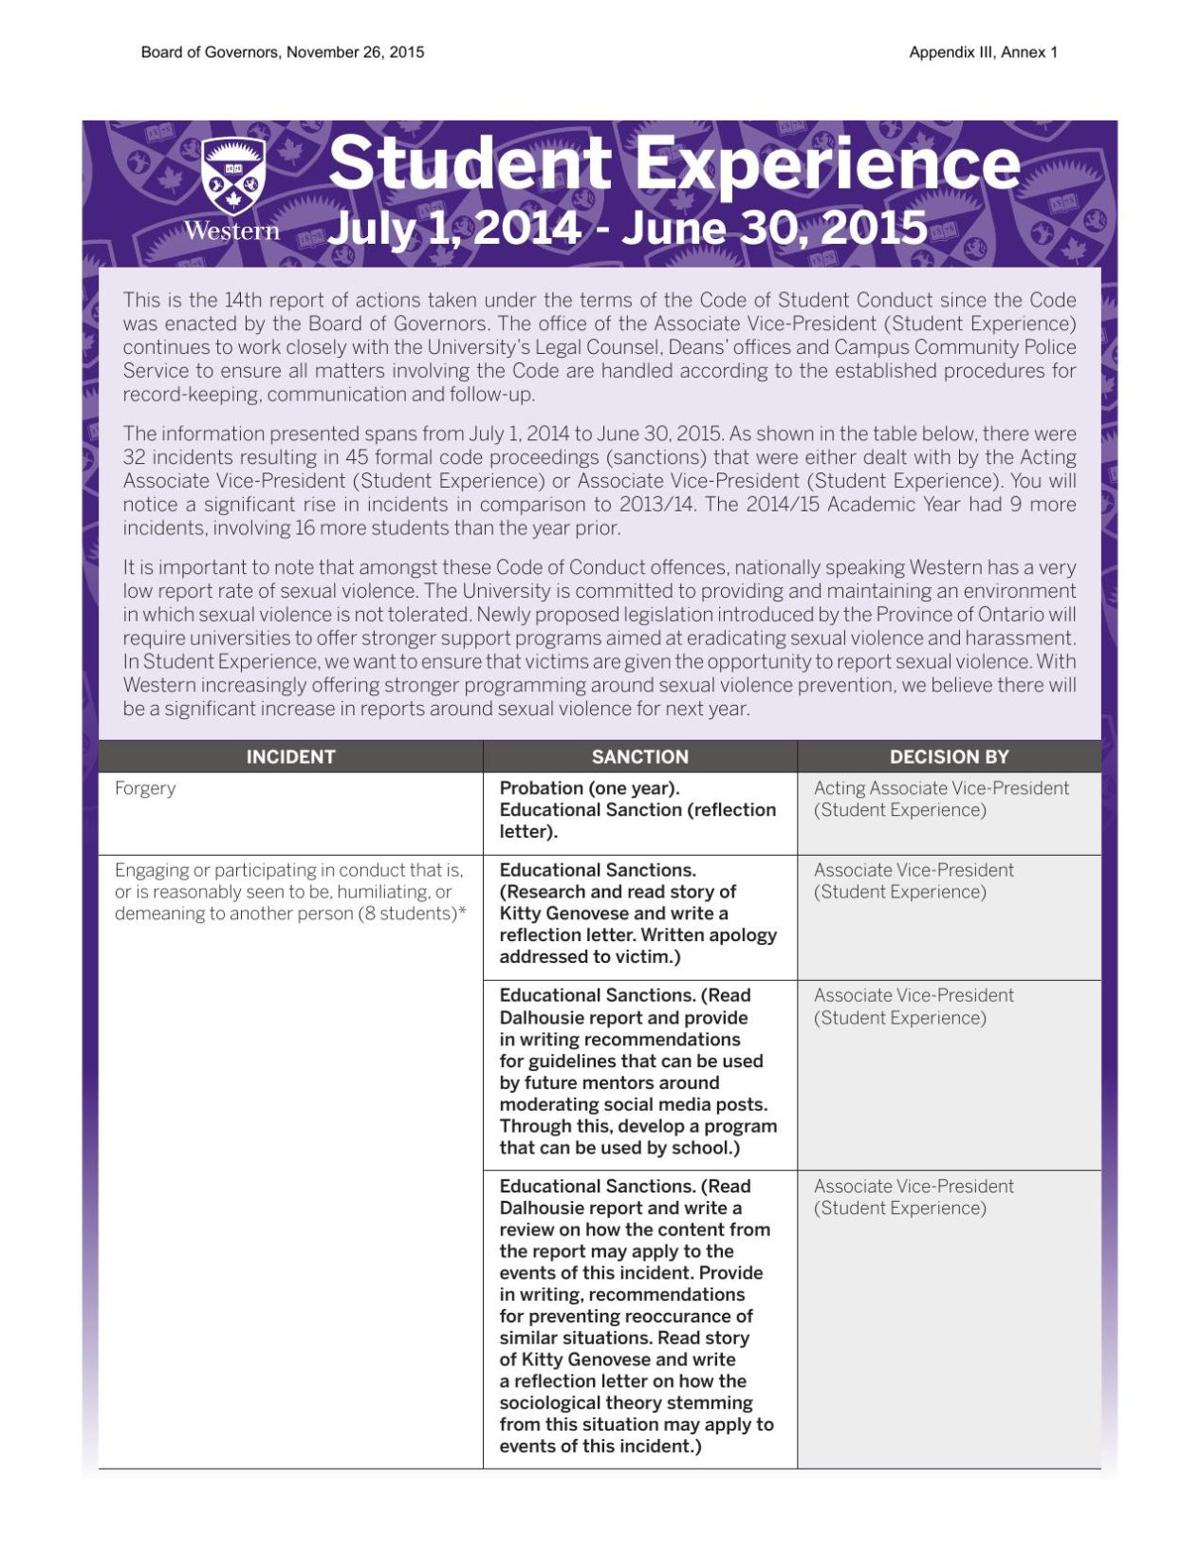 2015 Code of Student Conduct Report